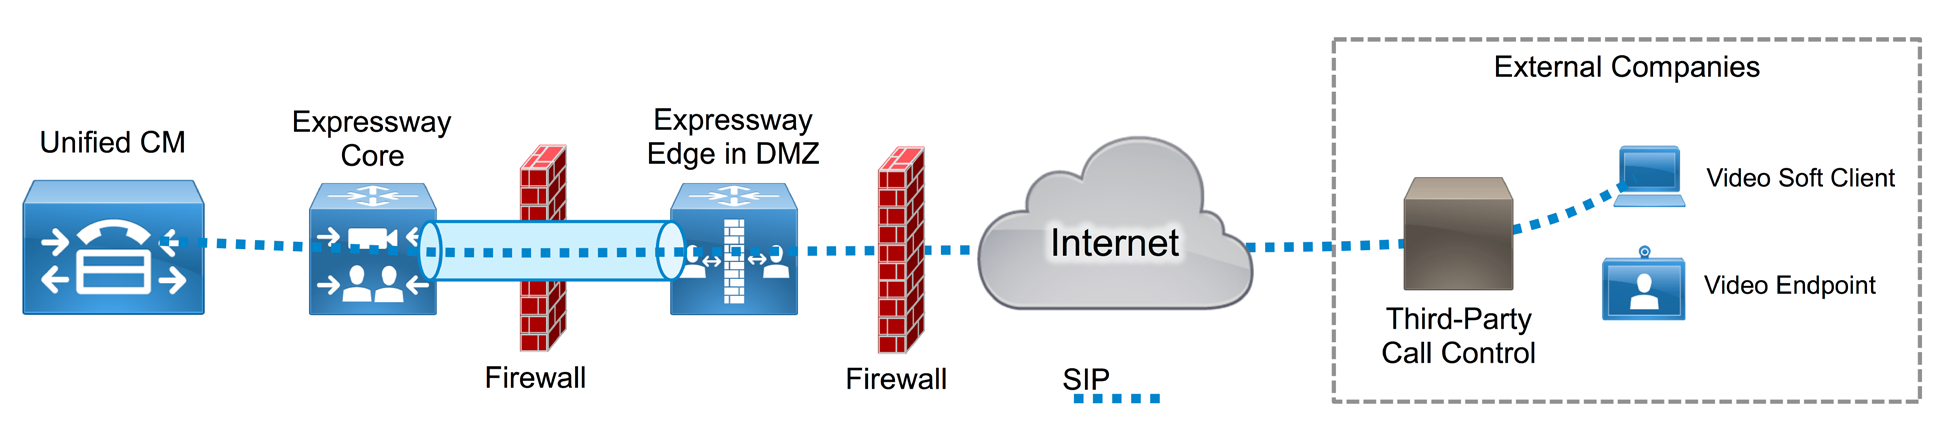 Figure 12 - Traversal for Business-to-Business Calls Through Firewall with Expressway Core and Expressway Edge Collaboration Edge Cisco Expressway Core Place Expressway Core in the trusted network